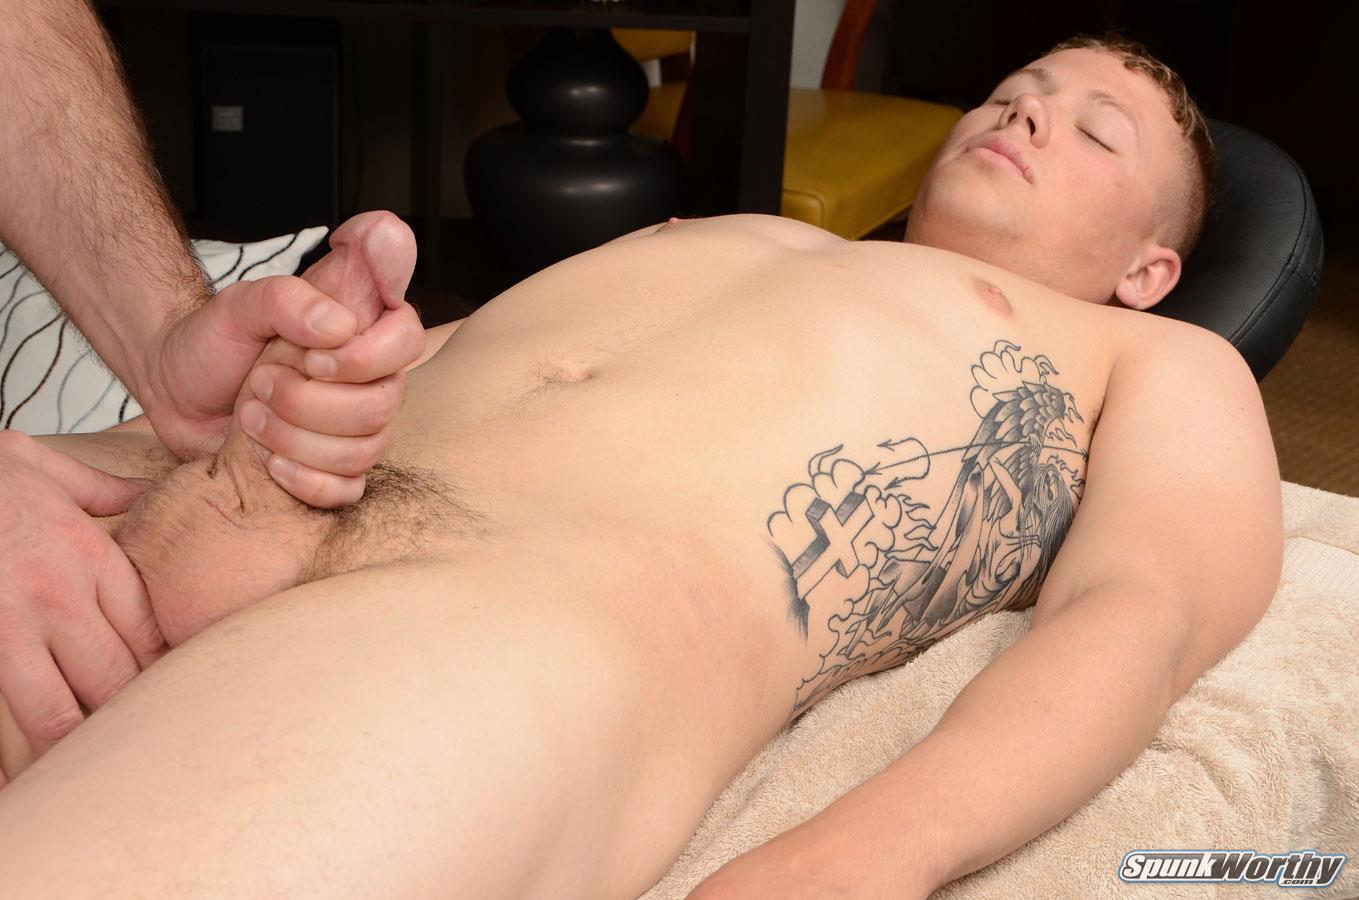 Spunk-Worthy-Sean-Straight-Marine-Getting-Massage-With-Happy-Ending-Amateur-Gay-Porn-09 Straight Marine Gets A Massage With Happy Ending From A Guy